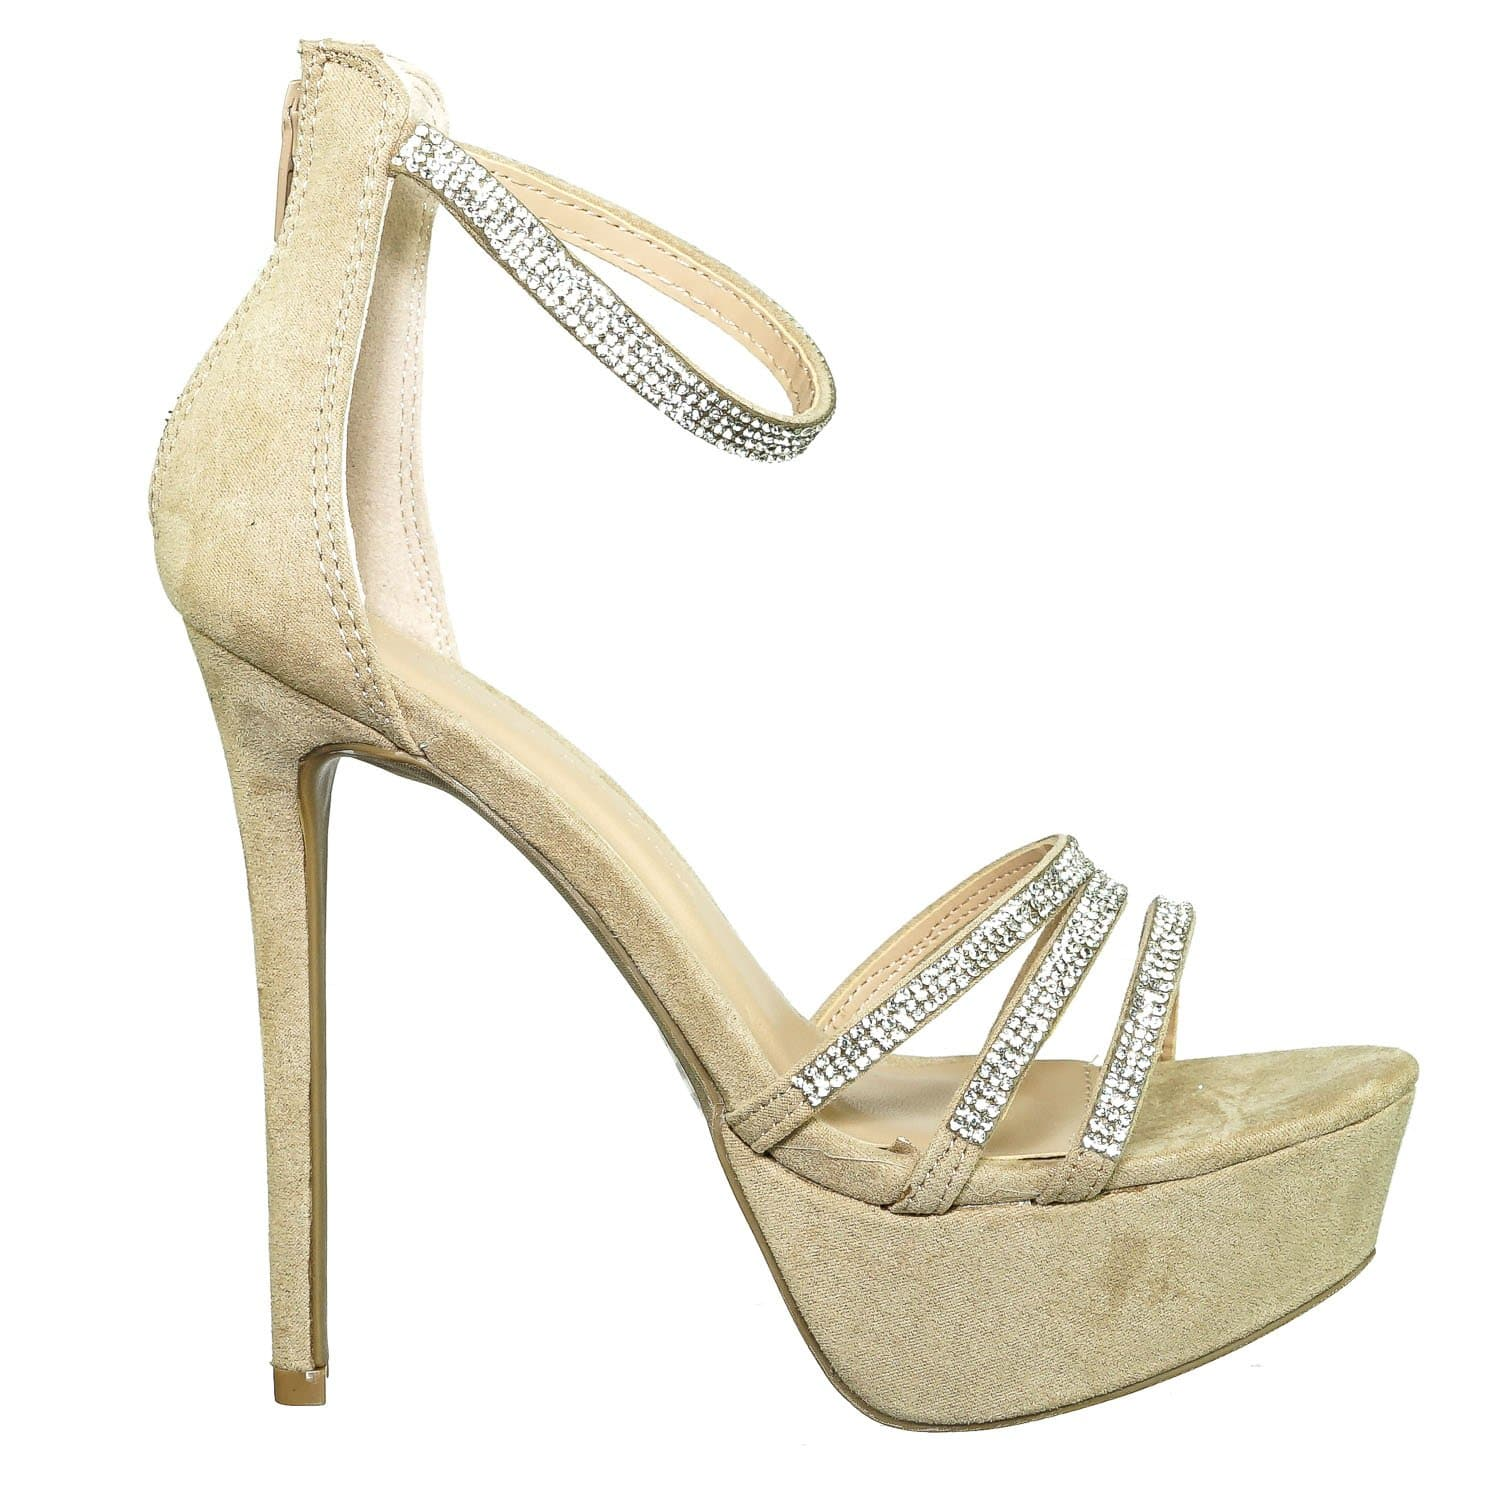 Malia01 NatSu Rhinestone High Heel Platform Dress Sandals - Women Ankle Strap Heels